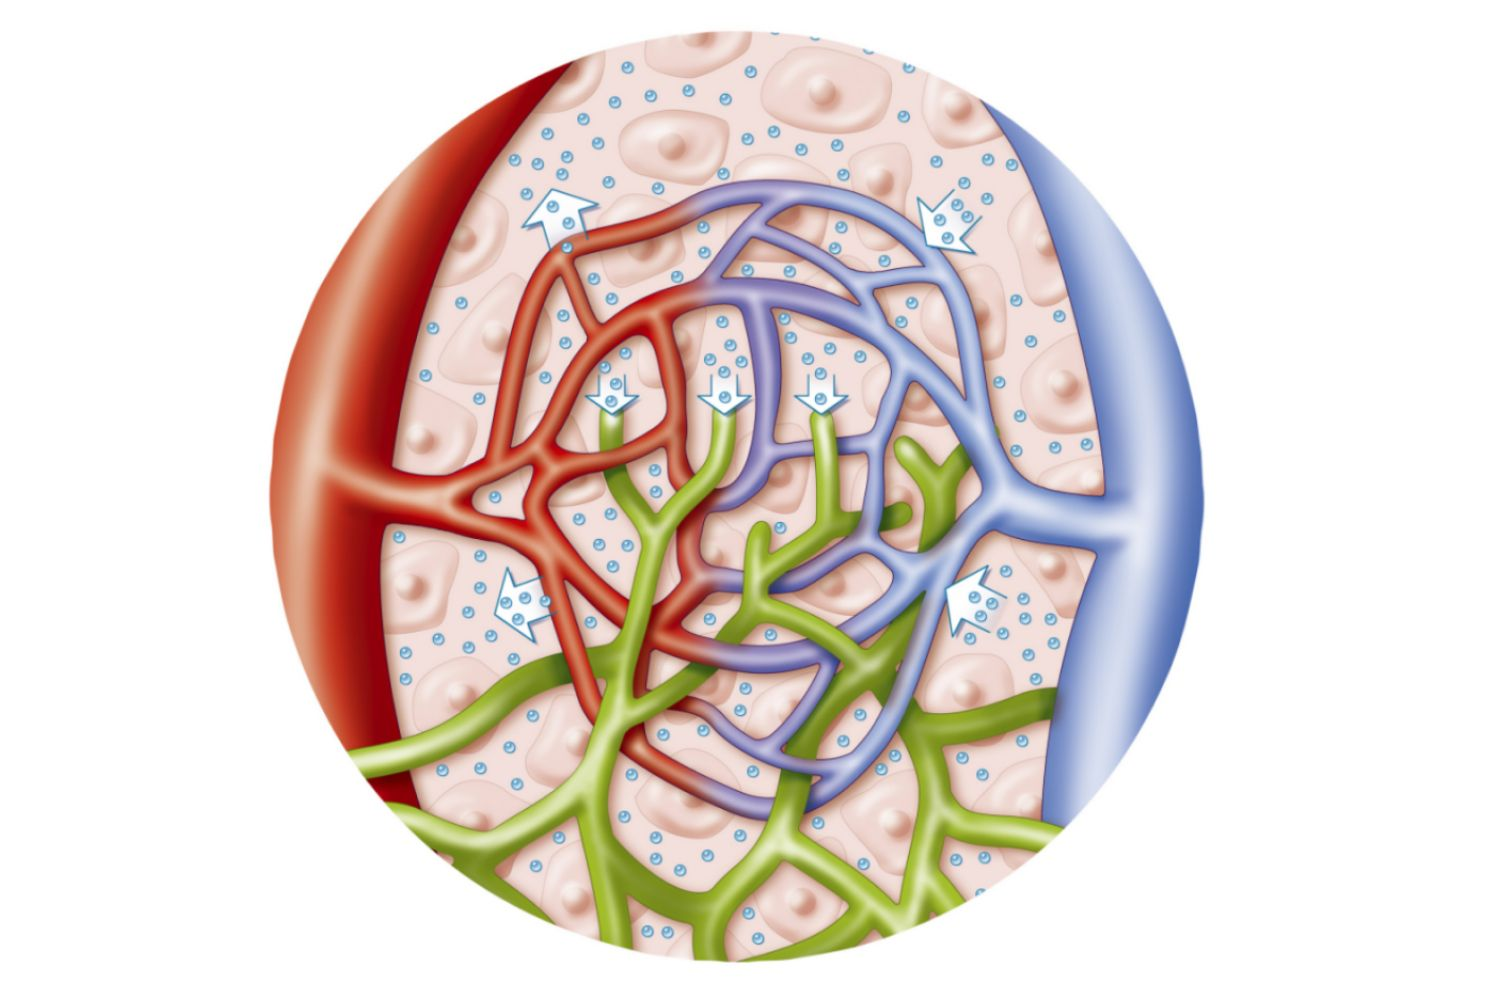 Lymphatic Vessels And Normal Blood Volume